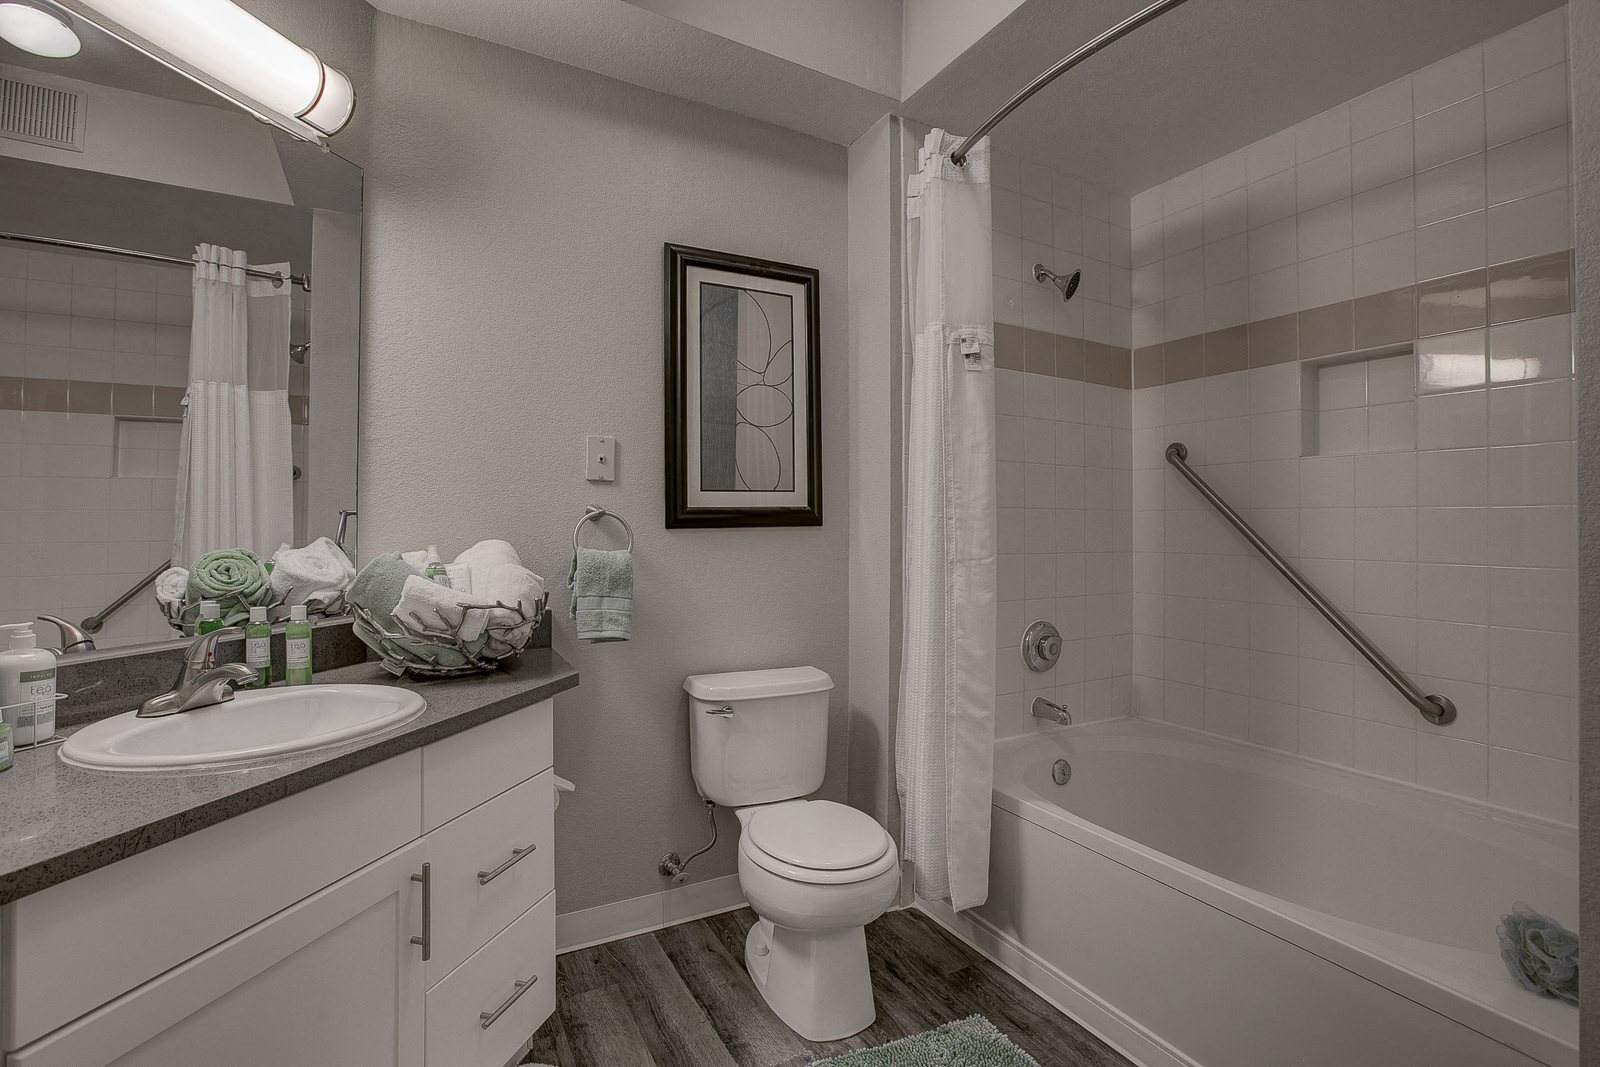 Luxury Highlands Ranch Apartments-Palomino Park Apartments Bathroom With Deep Tub And Large Mirror